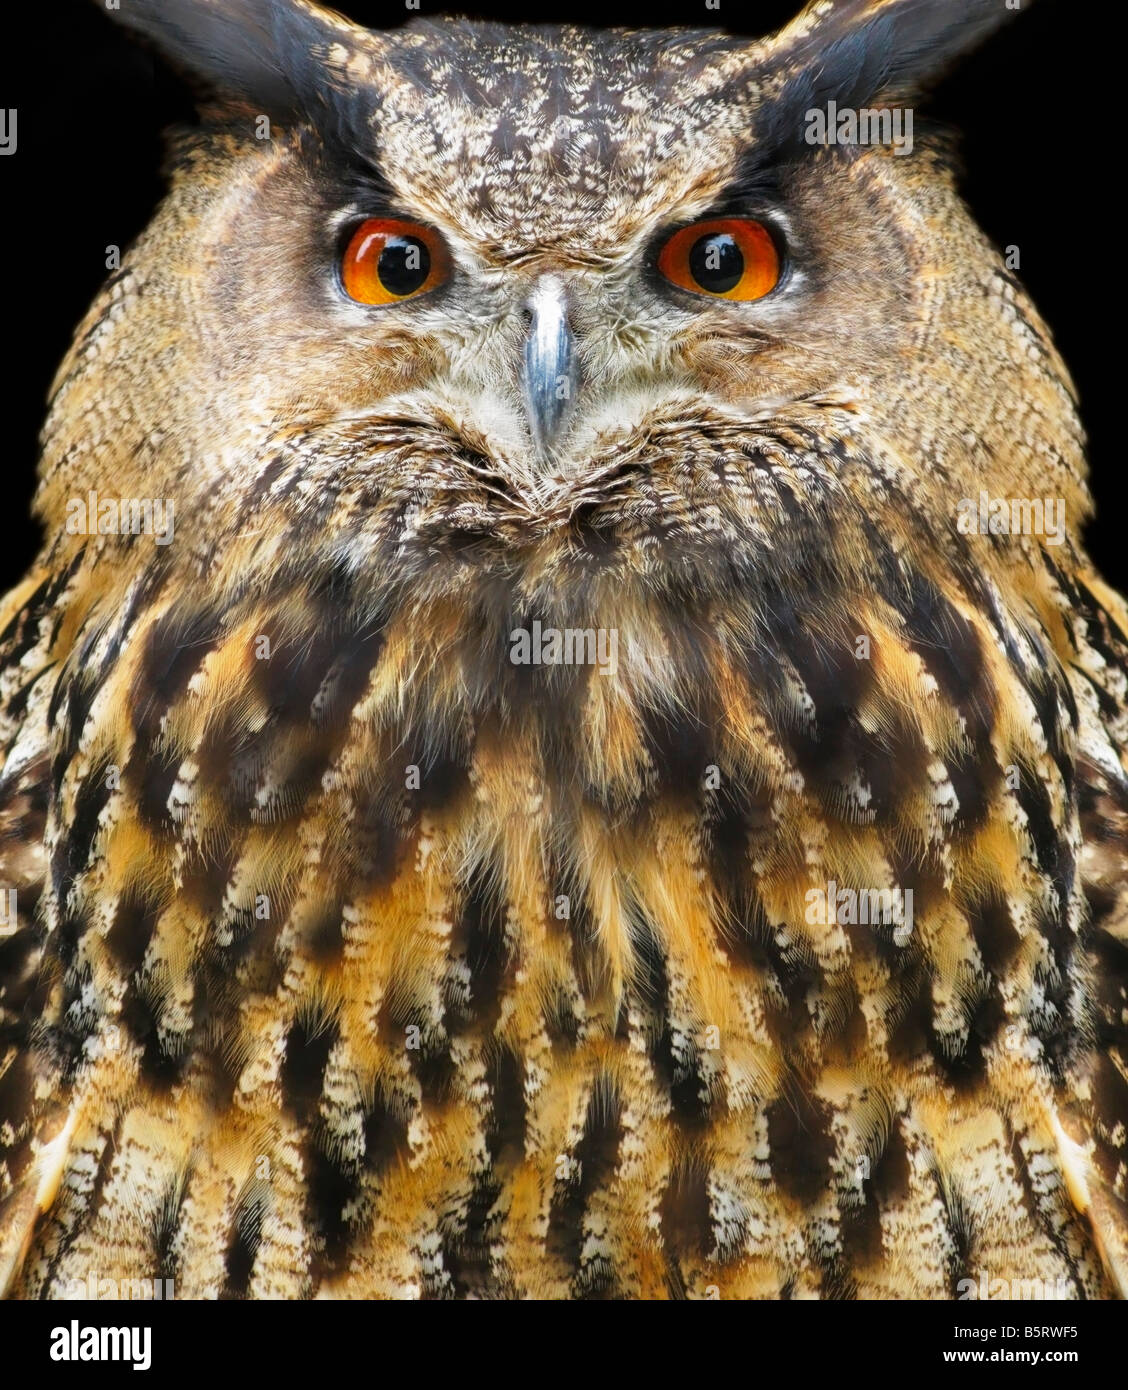 A captive European eagle owl stares at the viewer - Stock Image